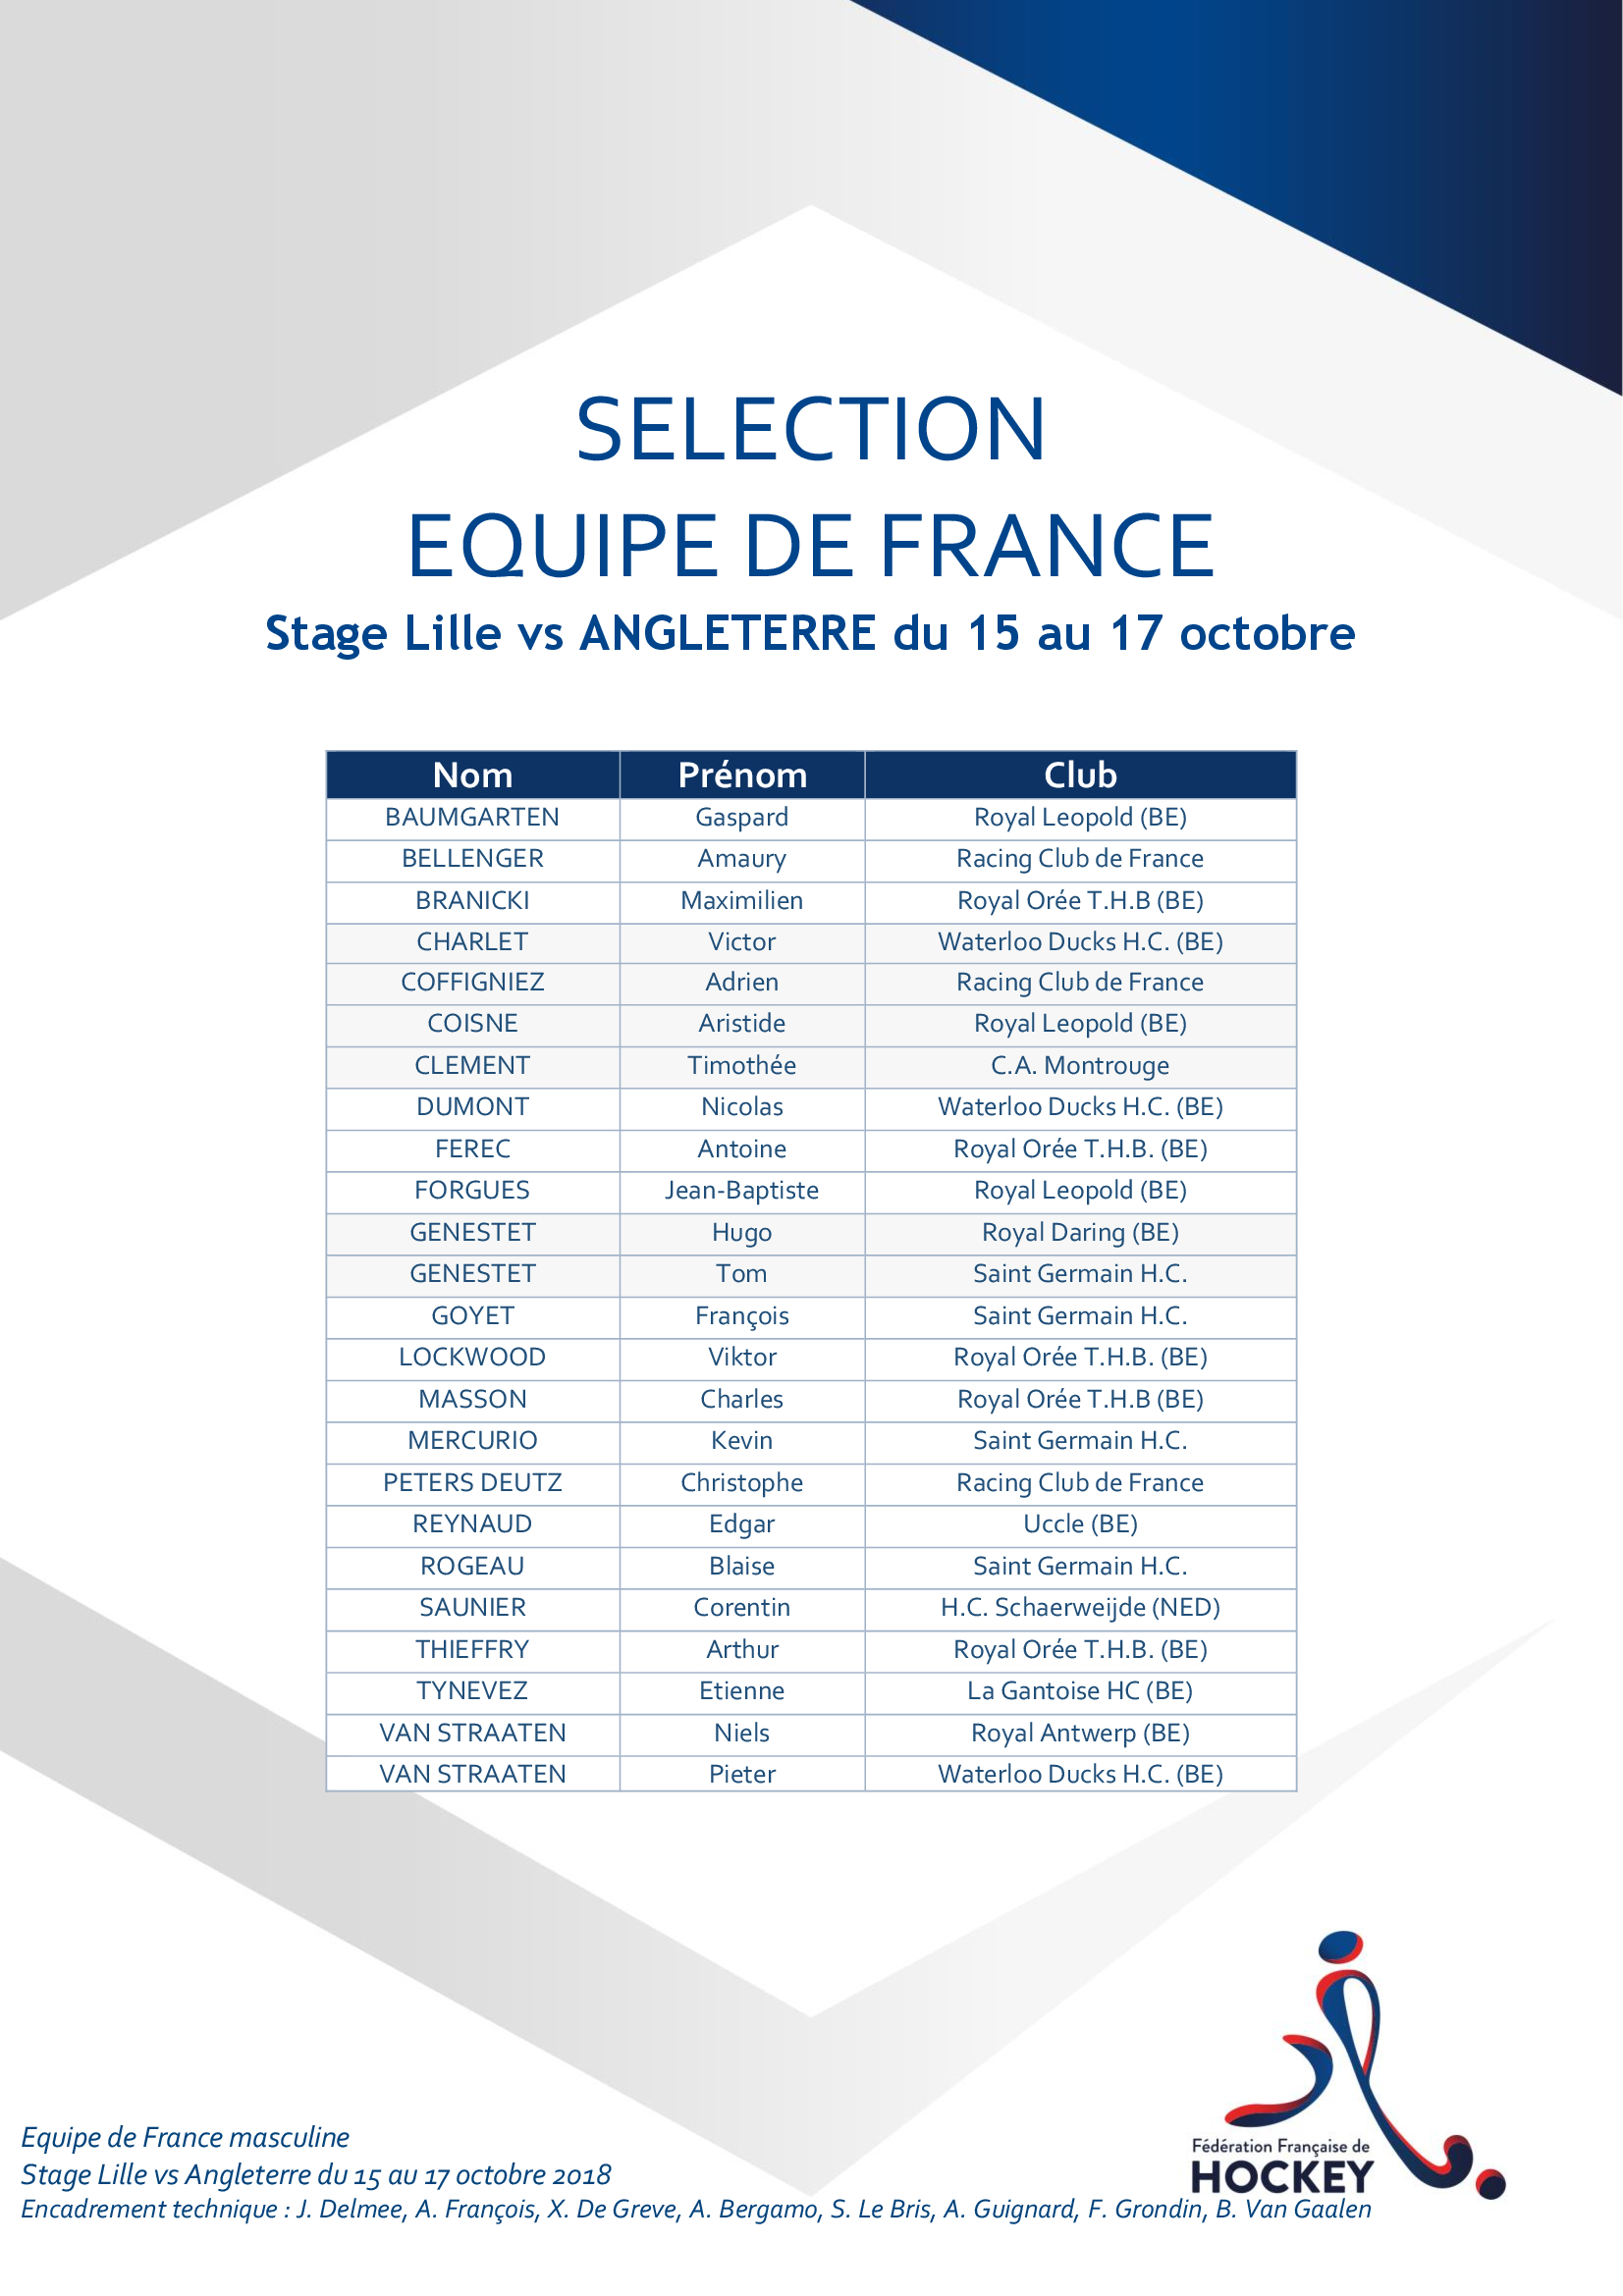 SELECTION EQUIPE DE FRANCE Matchs 15 au 17 octobre 2018 vs ENG